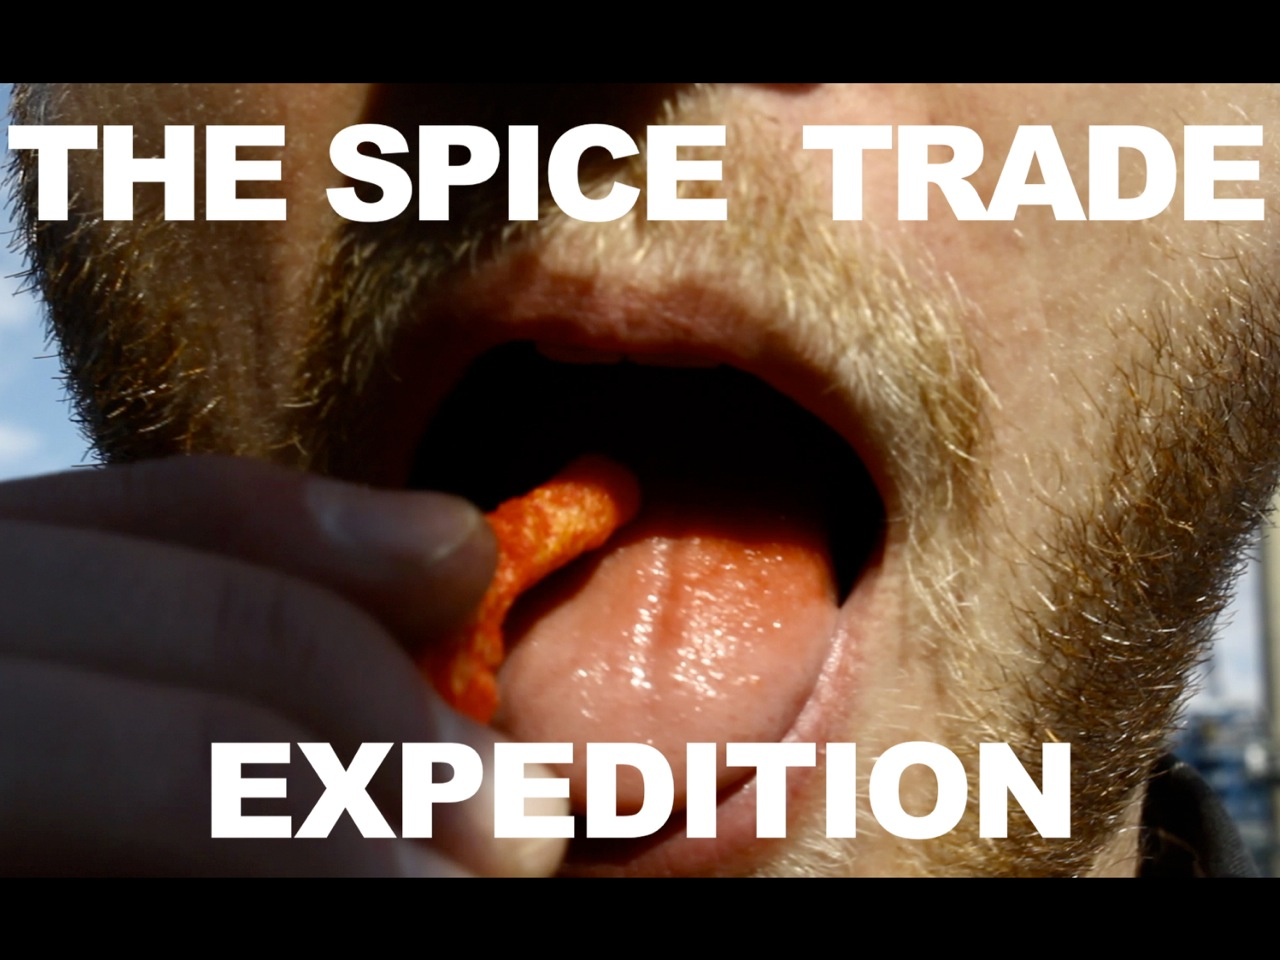 The Spice Trade Expedition